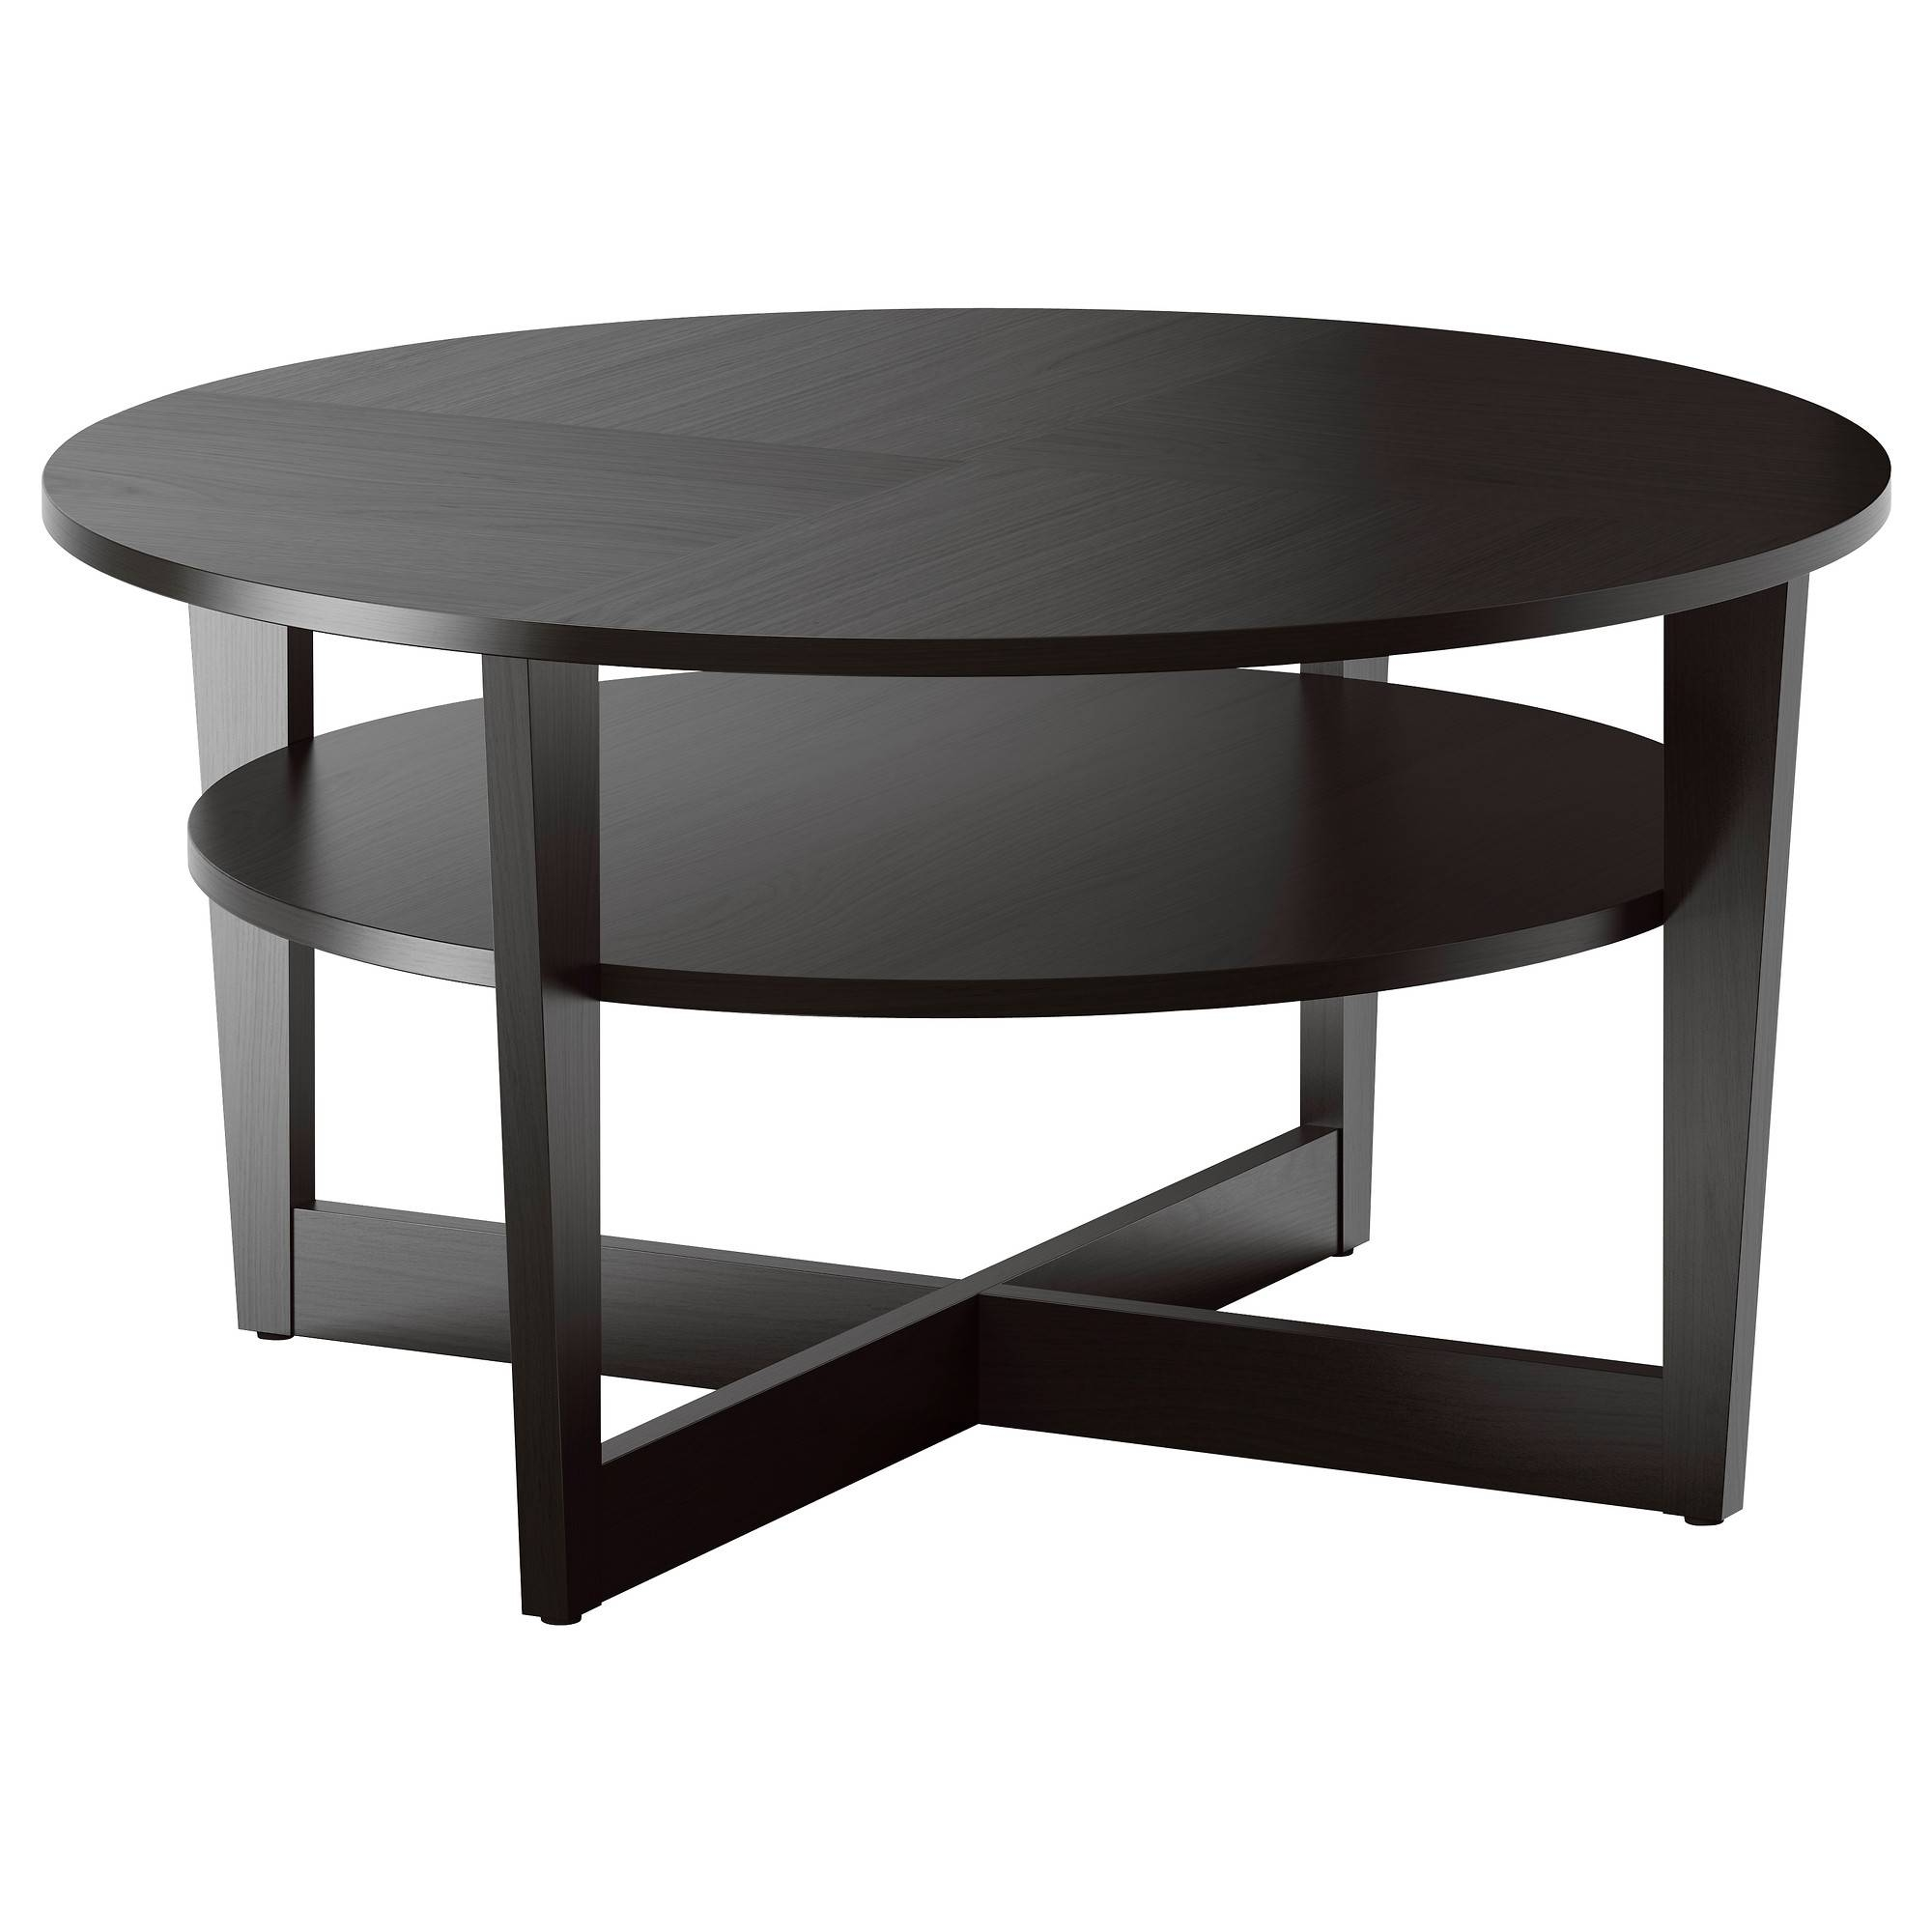 Vejmon Coffee Table - Black-Brown - Ikea inside White Oval Coffee Tables (Image 28 of 30)